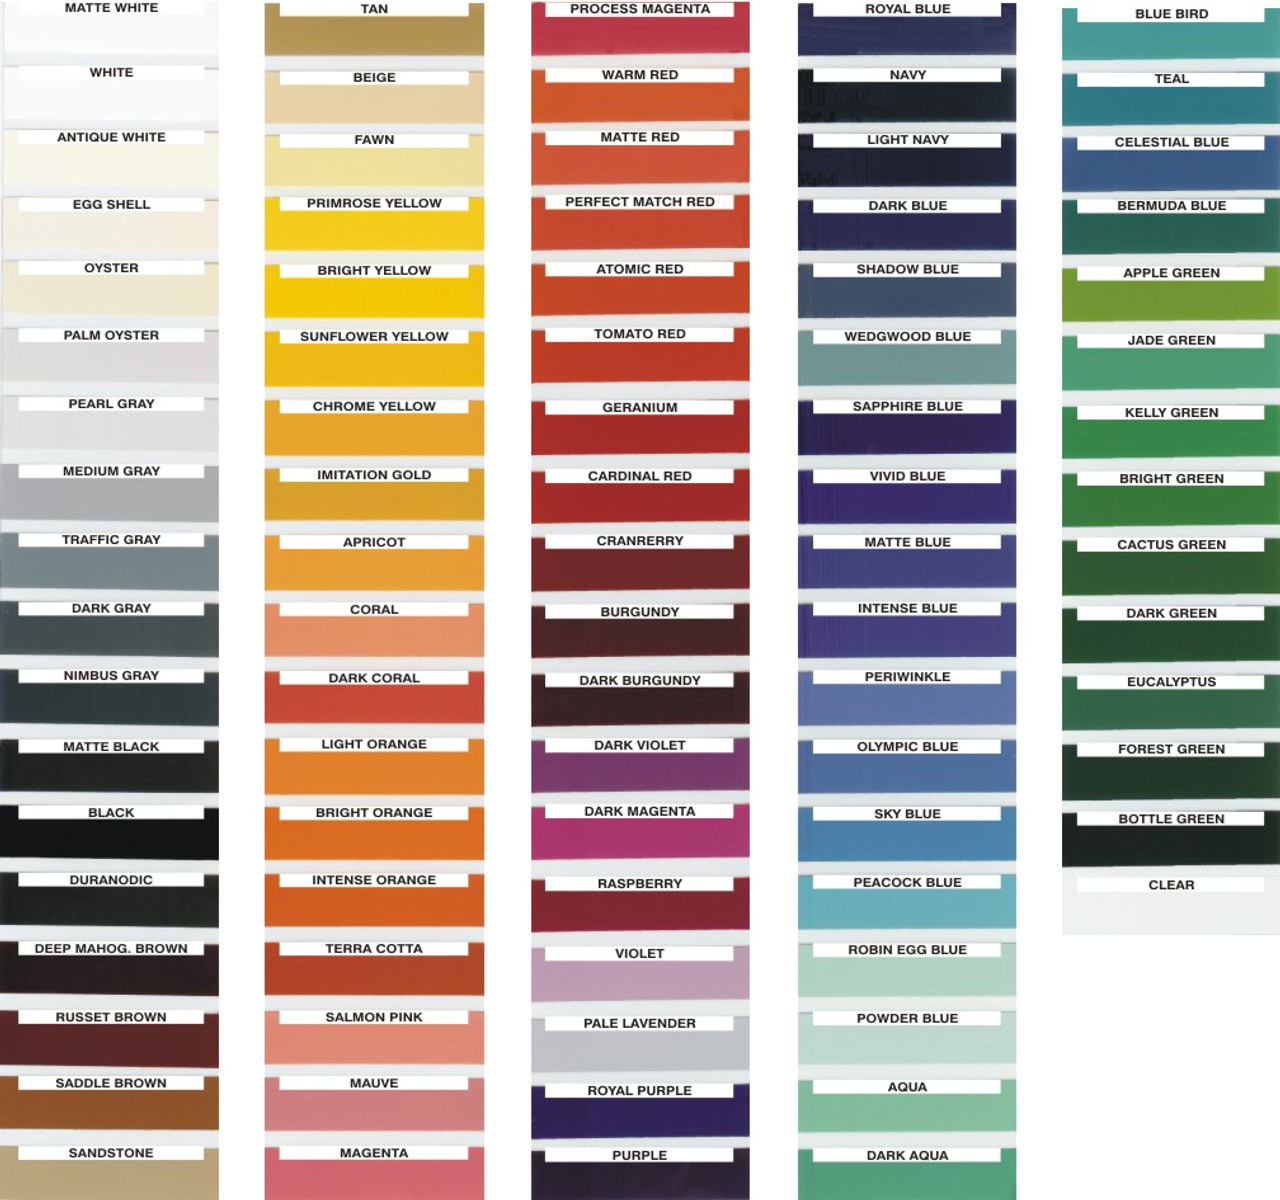 Various possible options for custom colors PLEASE USE THESE NAMES WHEN YOU ORDER.